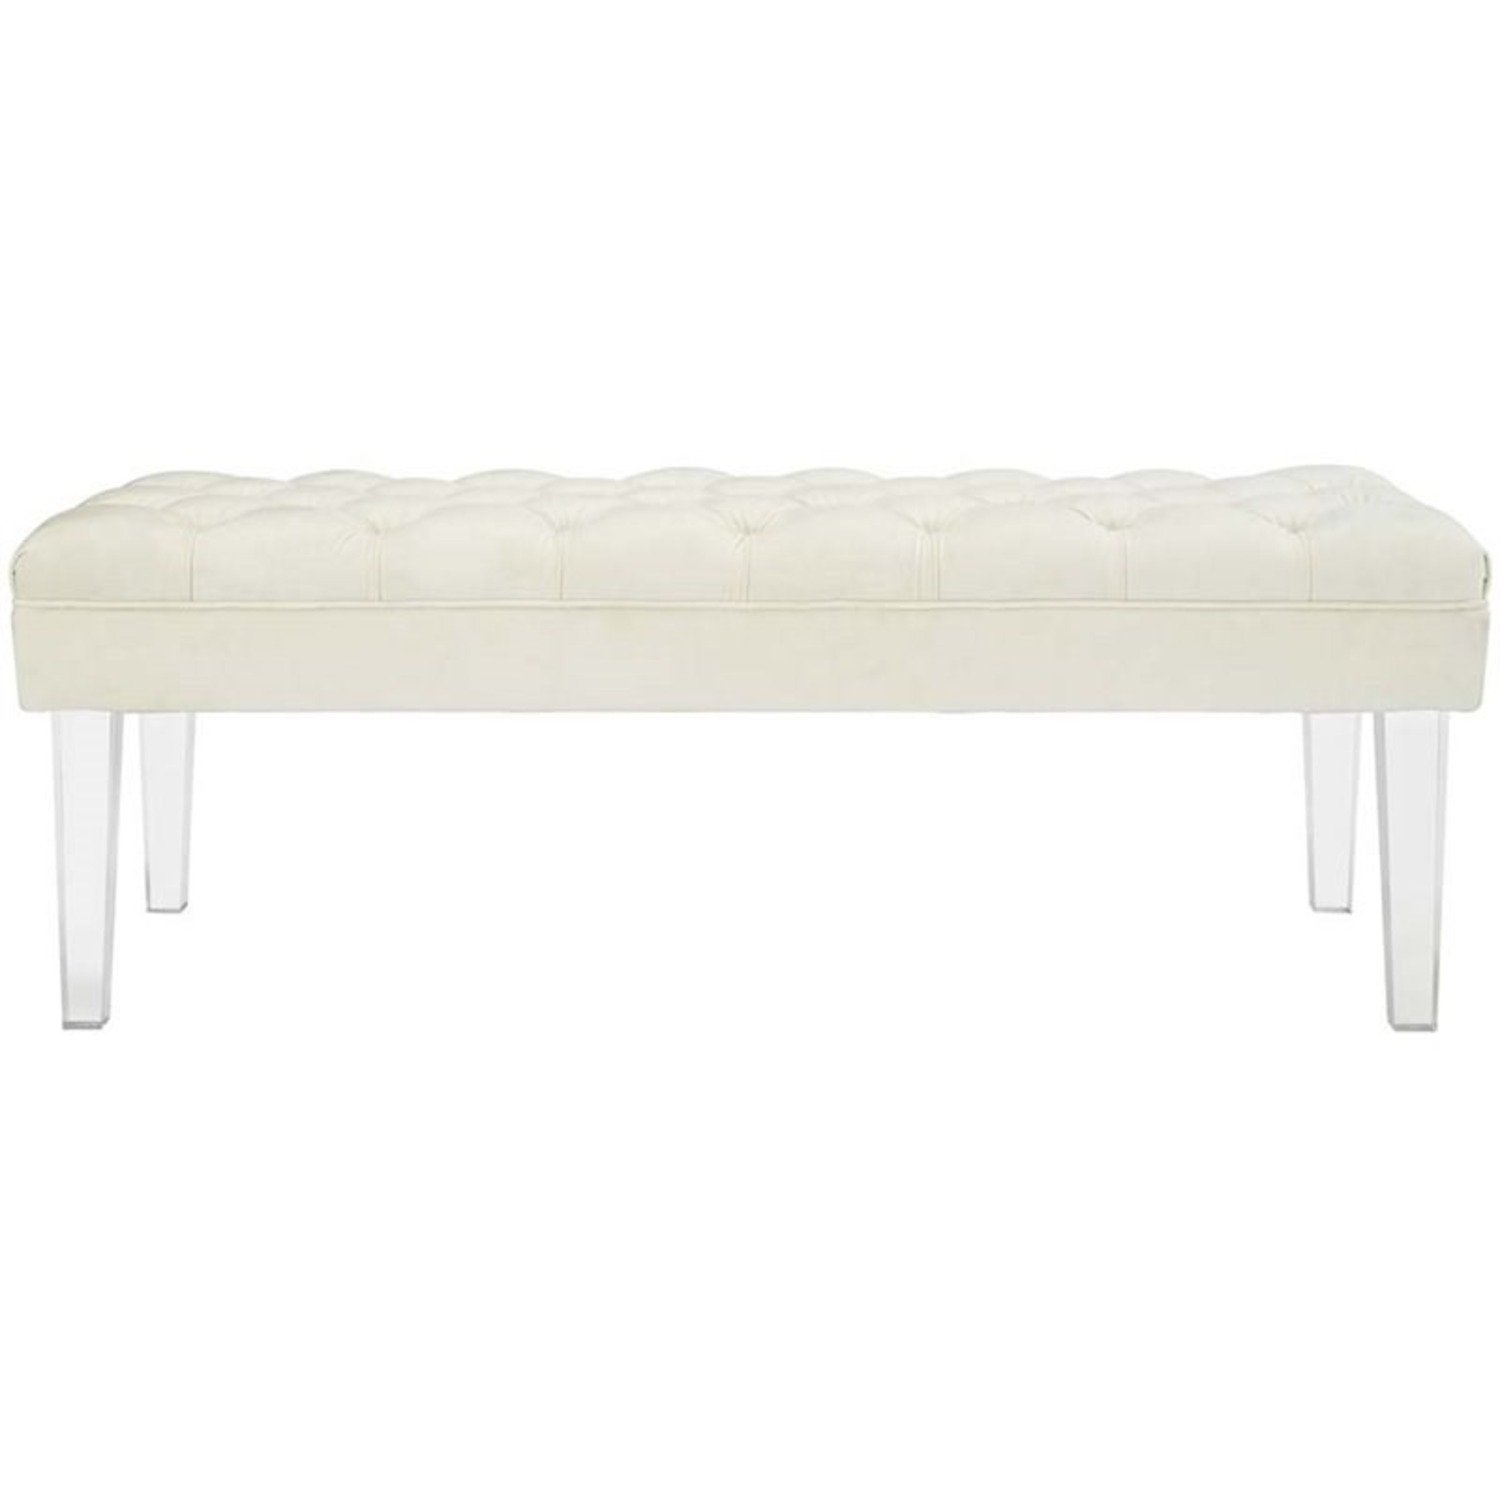 Bench In Ivory Velvet Fabric W/ Clear Acrylic Legs - image-0